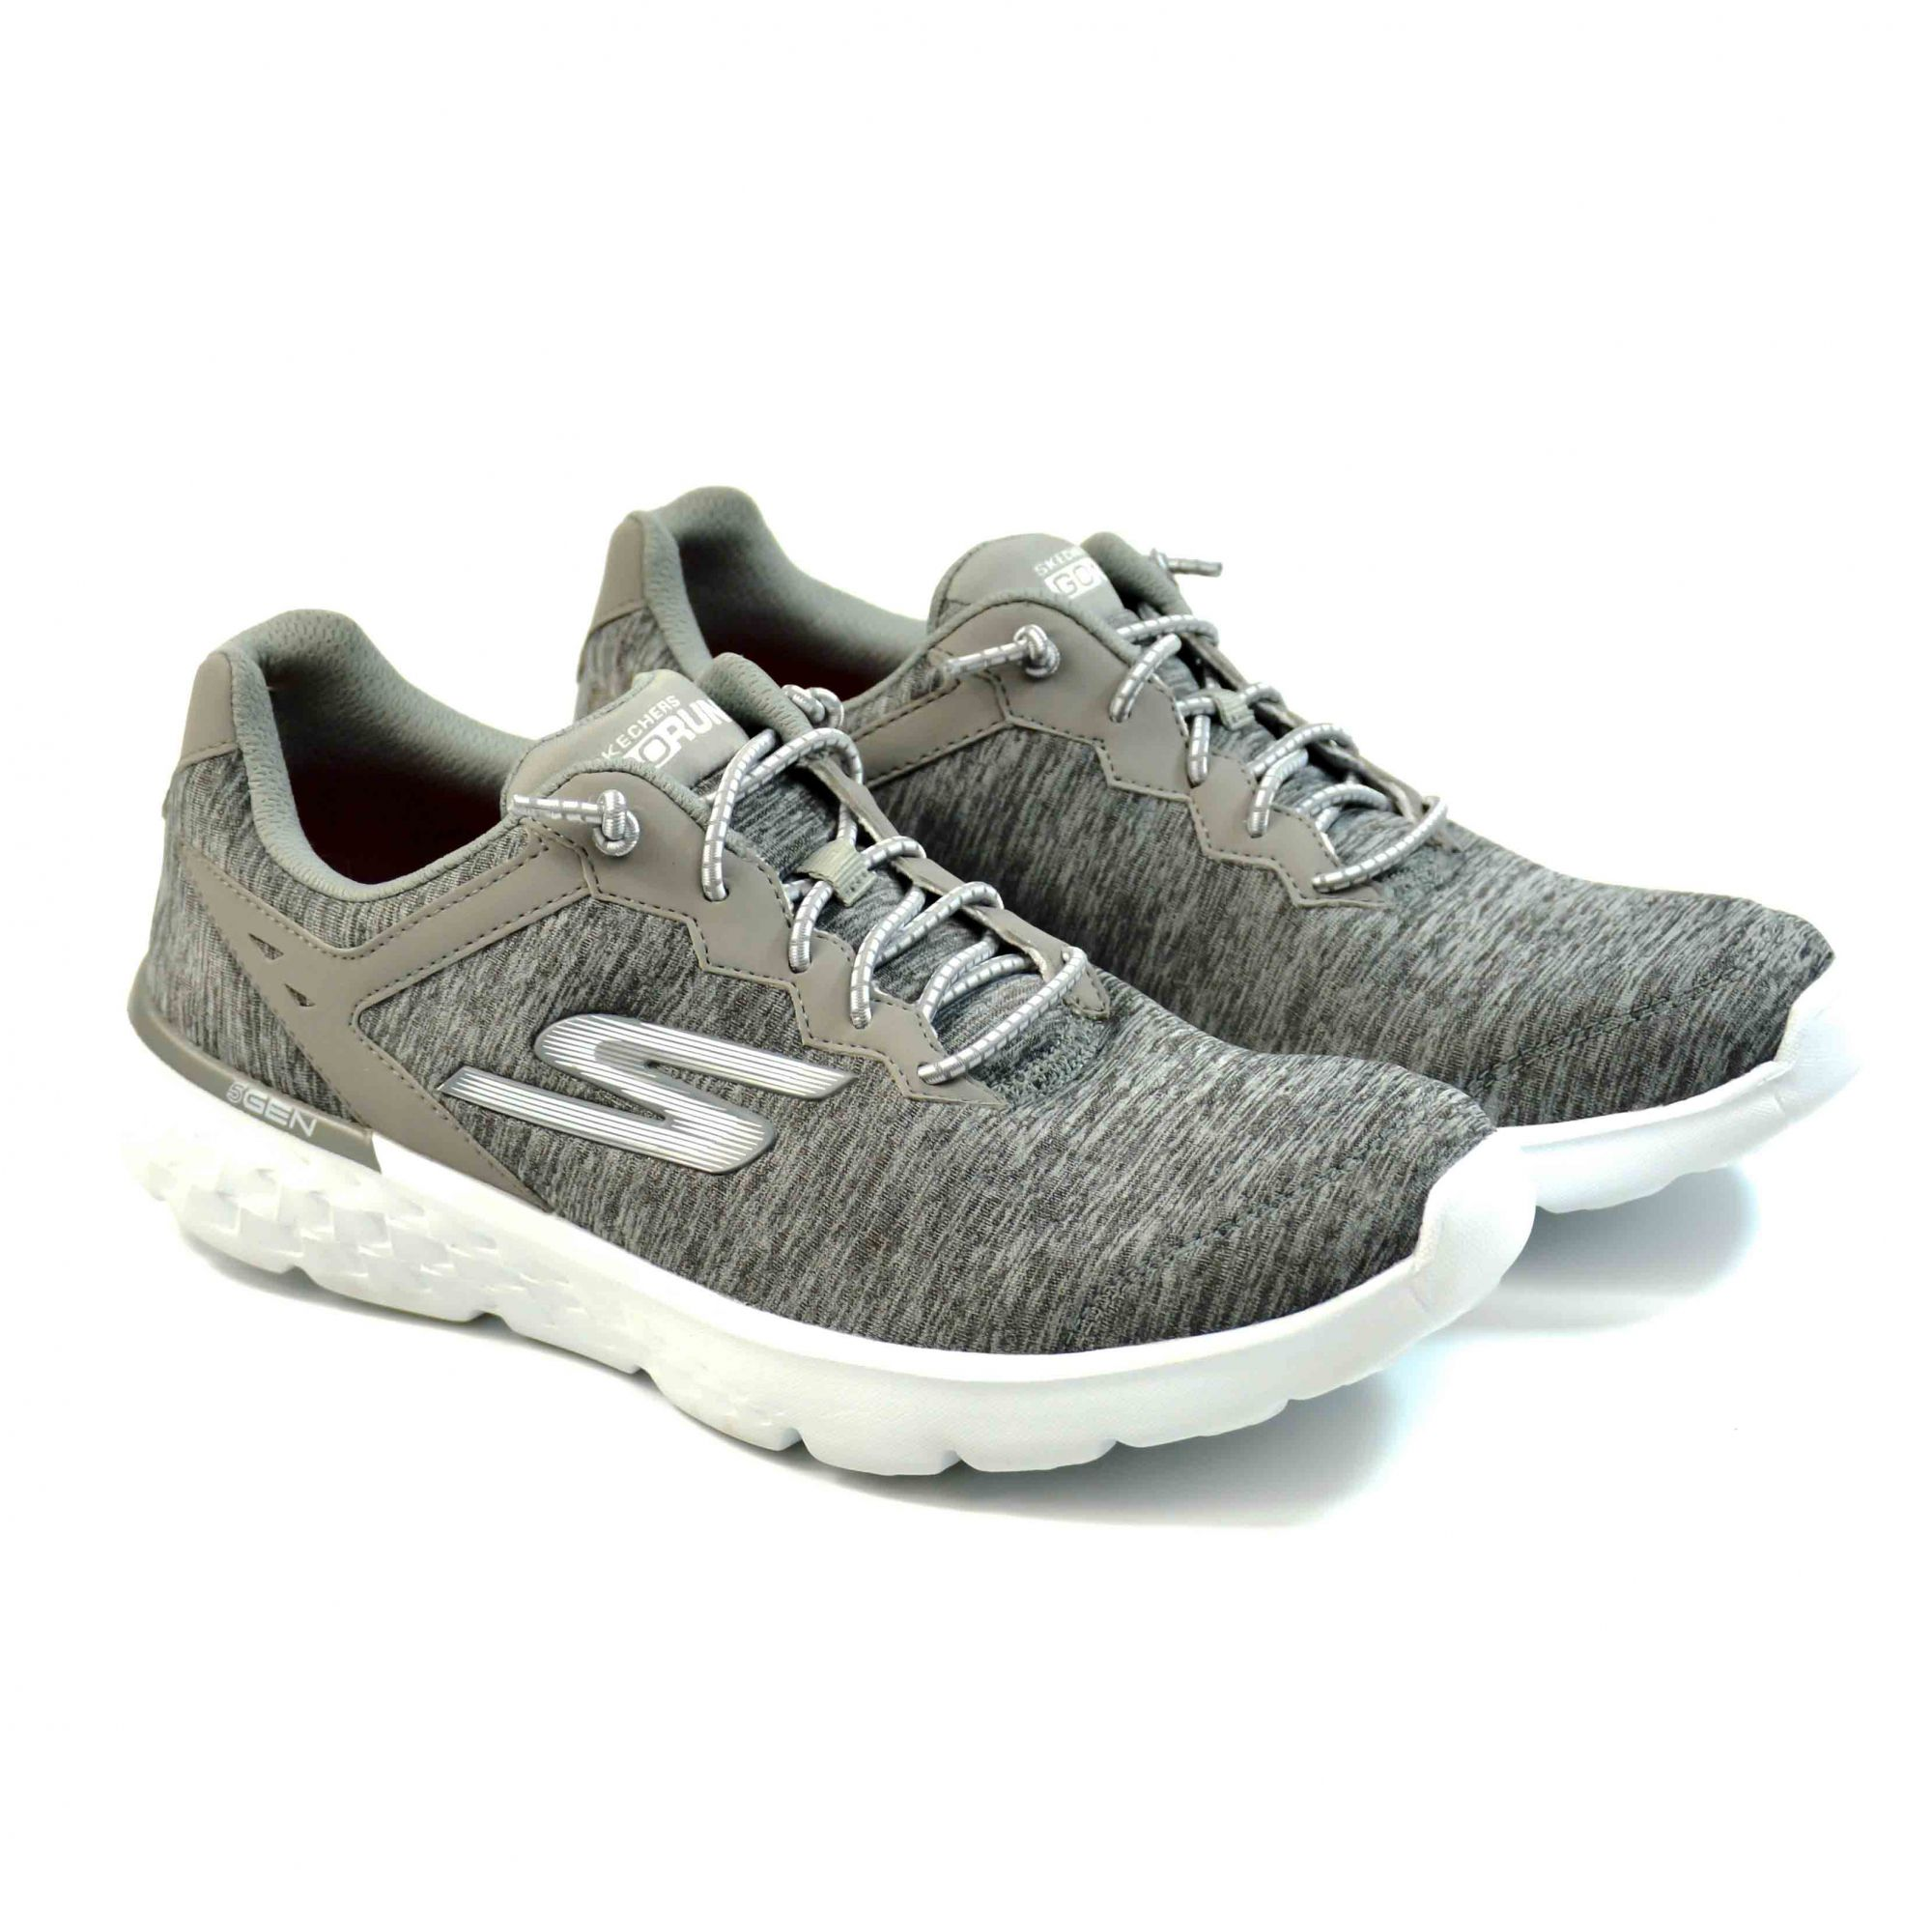 b43f8d3205 E  TENIS FEM GOW-14809-GRY GO RUN 400 SWIFTLY SKECHERS 15352 - Morga ...